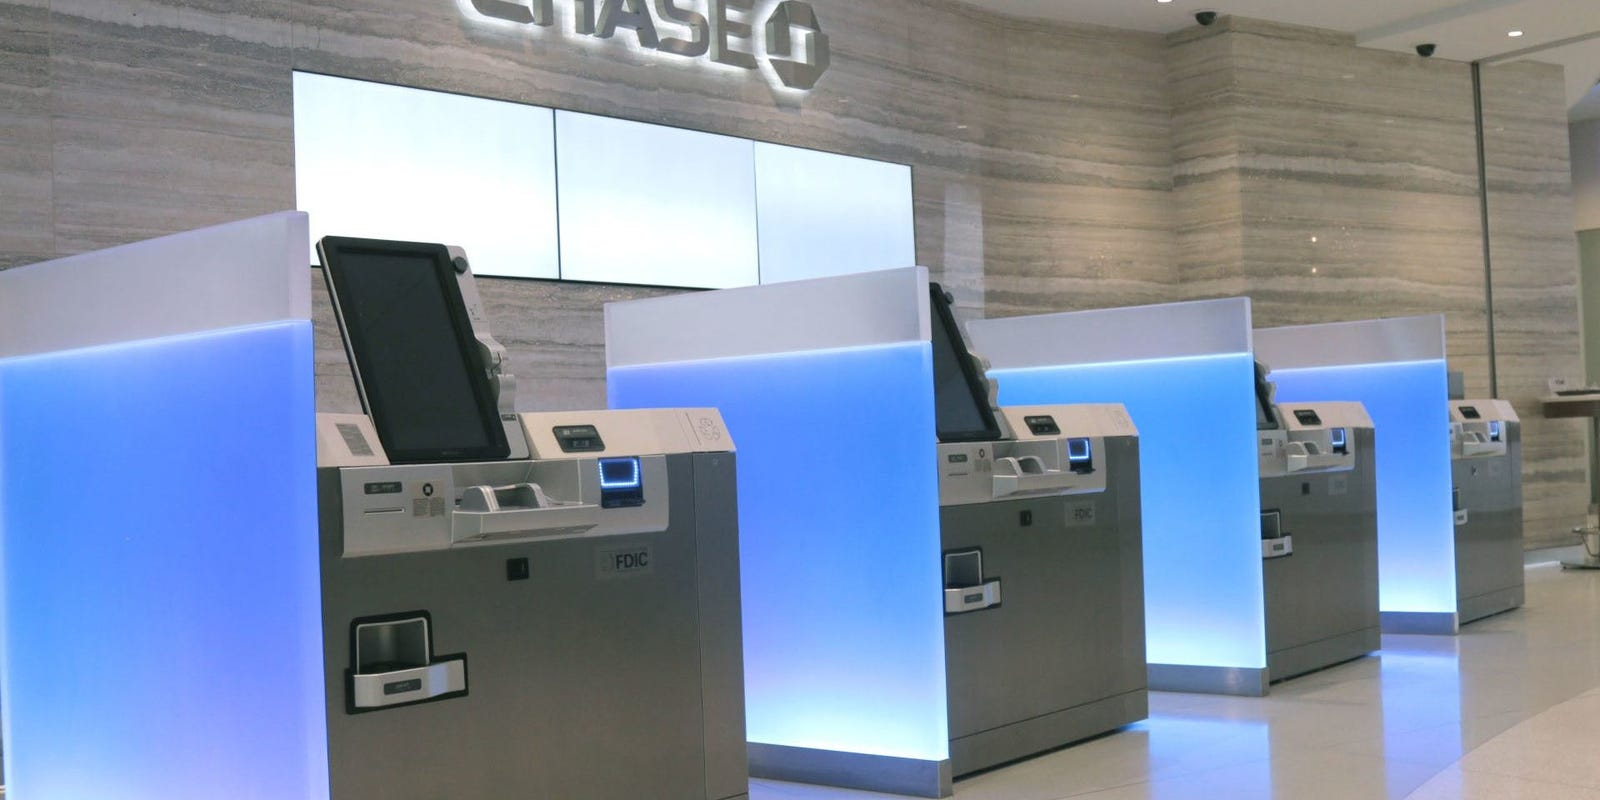 Chase branches close over unequal lending protests